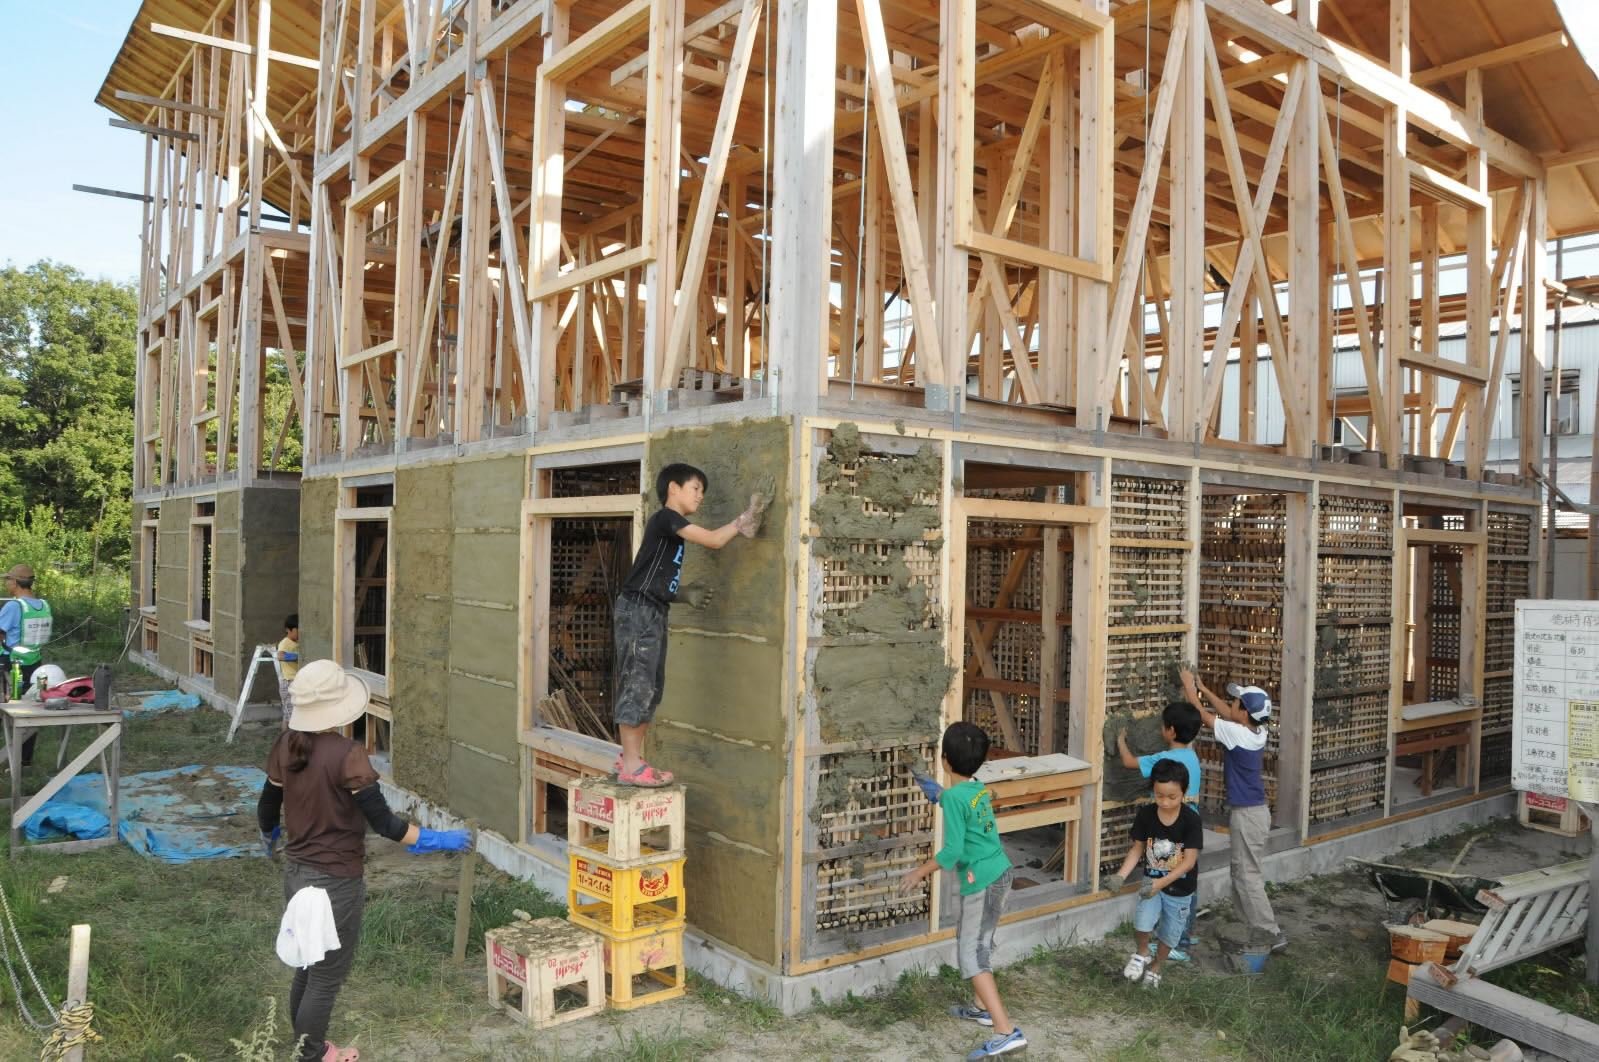 Nagoya temple erects home for all for guests the japan times for Help building a house